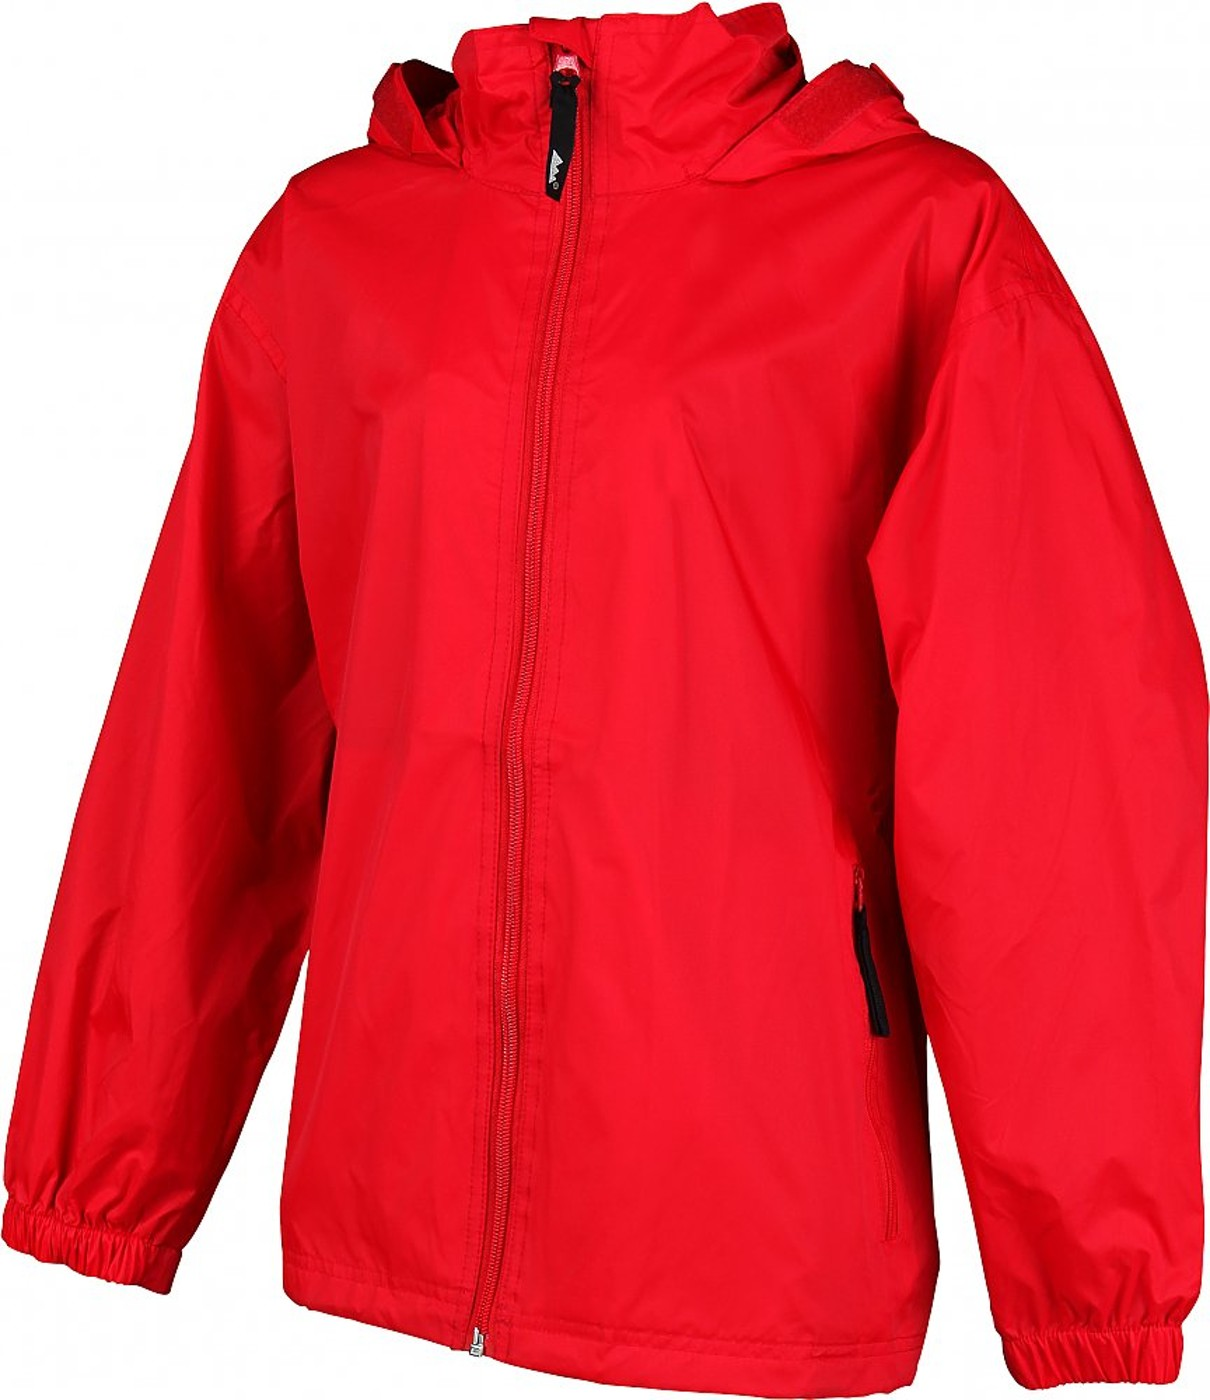 HIGH COLORADO Regenjacke NIZZA - Kinder